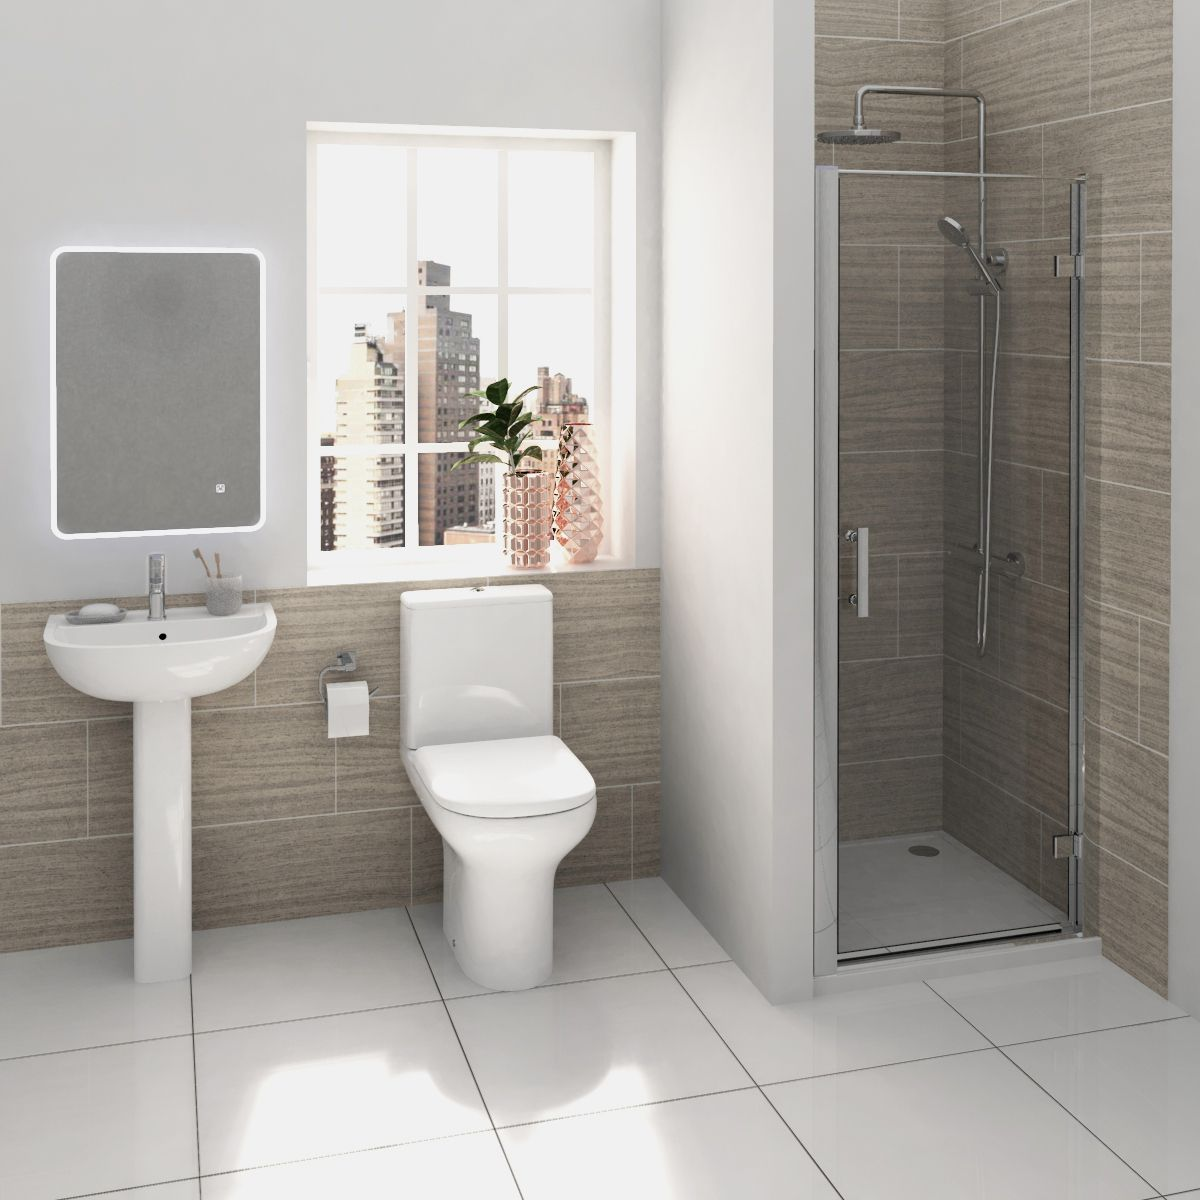 RAK Compact Shower Suite with Pacific Hinged Door Shower Enclosure Recess